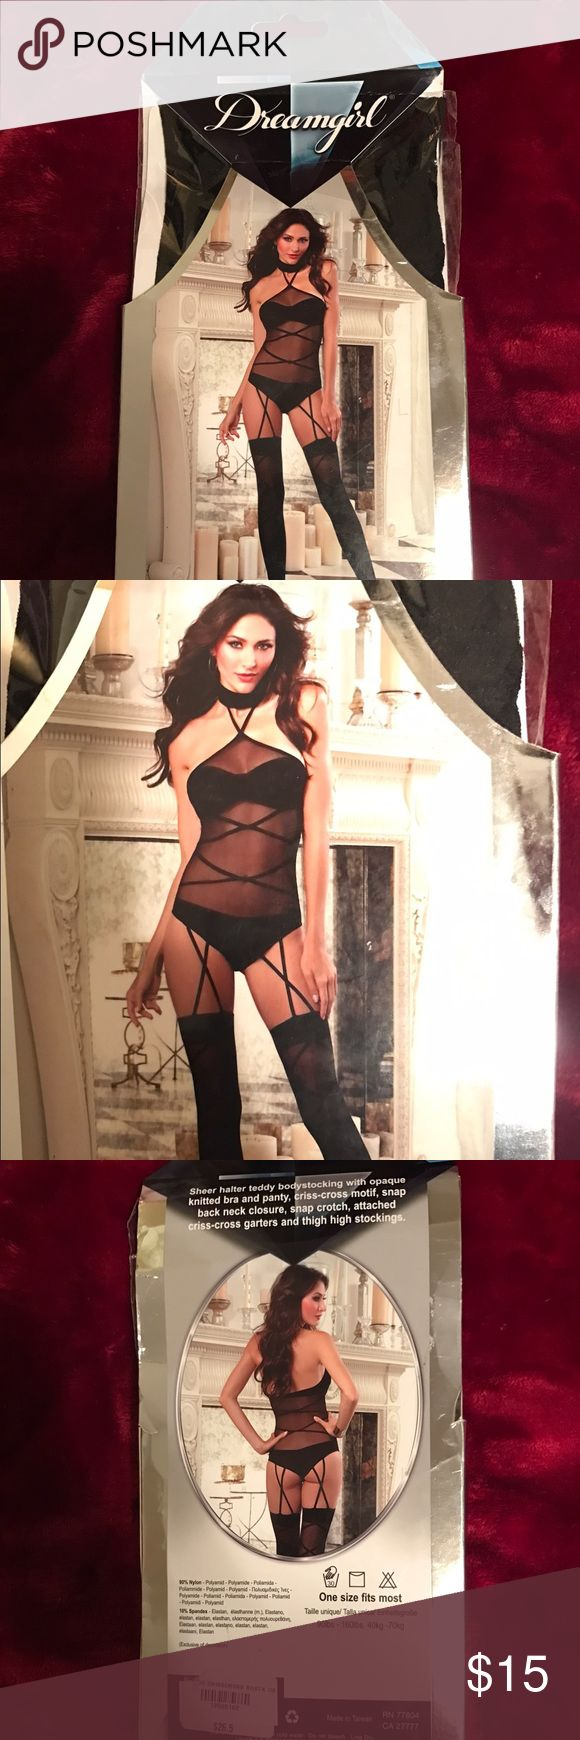 🌟 NWT💫 Dreamgirl Lingerie Never Opened 🌟 One Size Dreamgirl brand lingerie never owned, still in box. Bought at a boutique. Intimates & Sleepwear Chemises & Slips